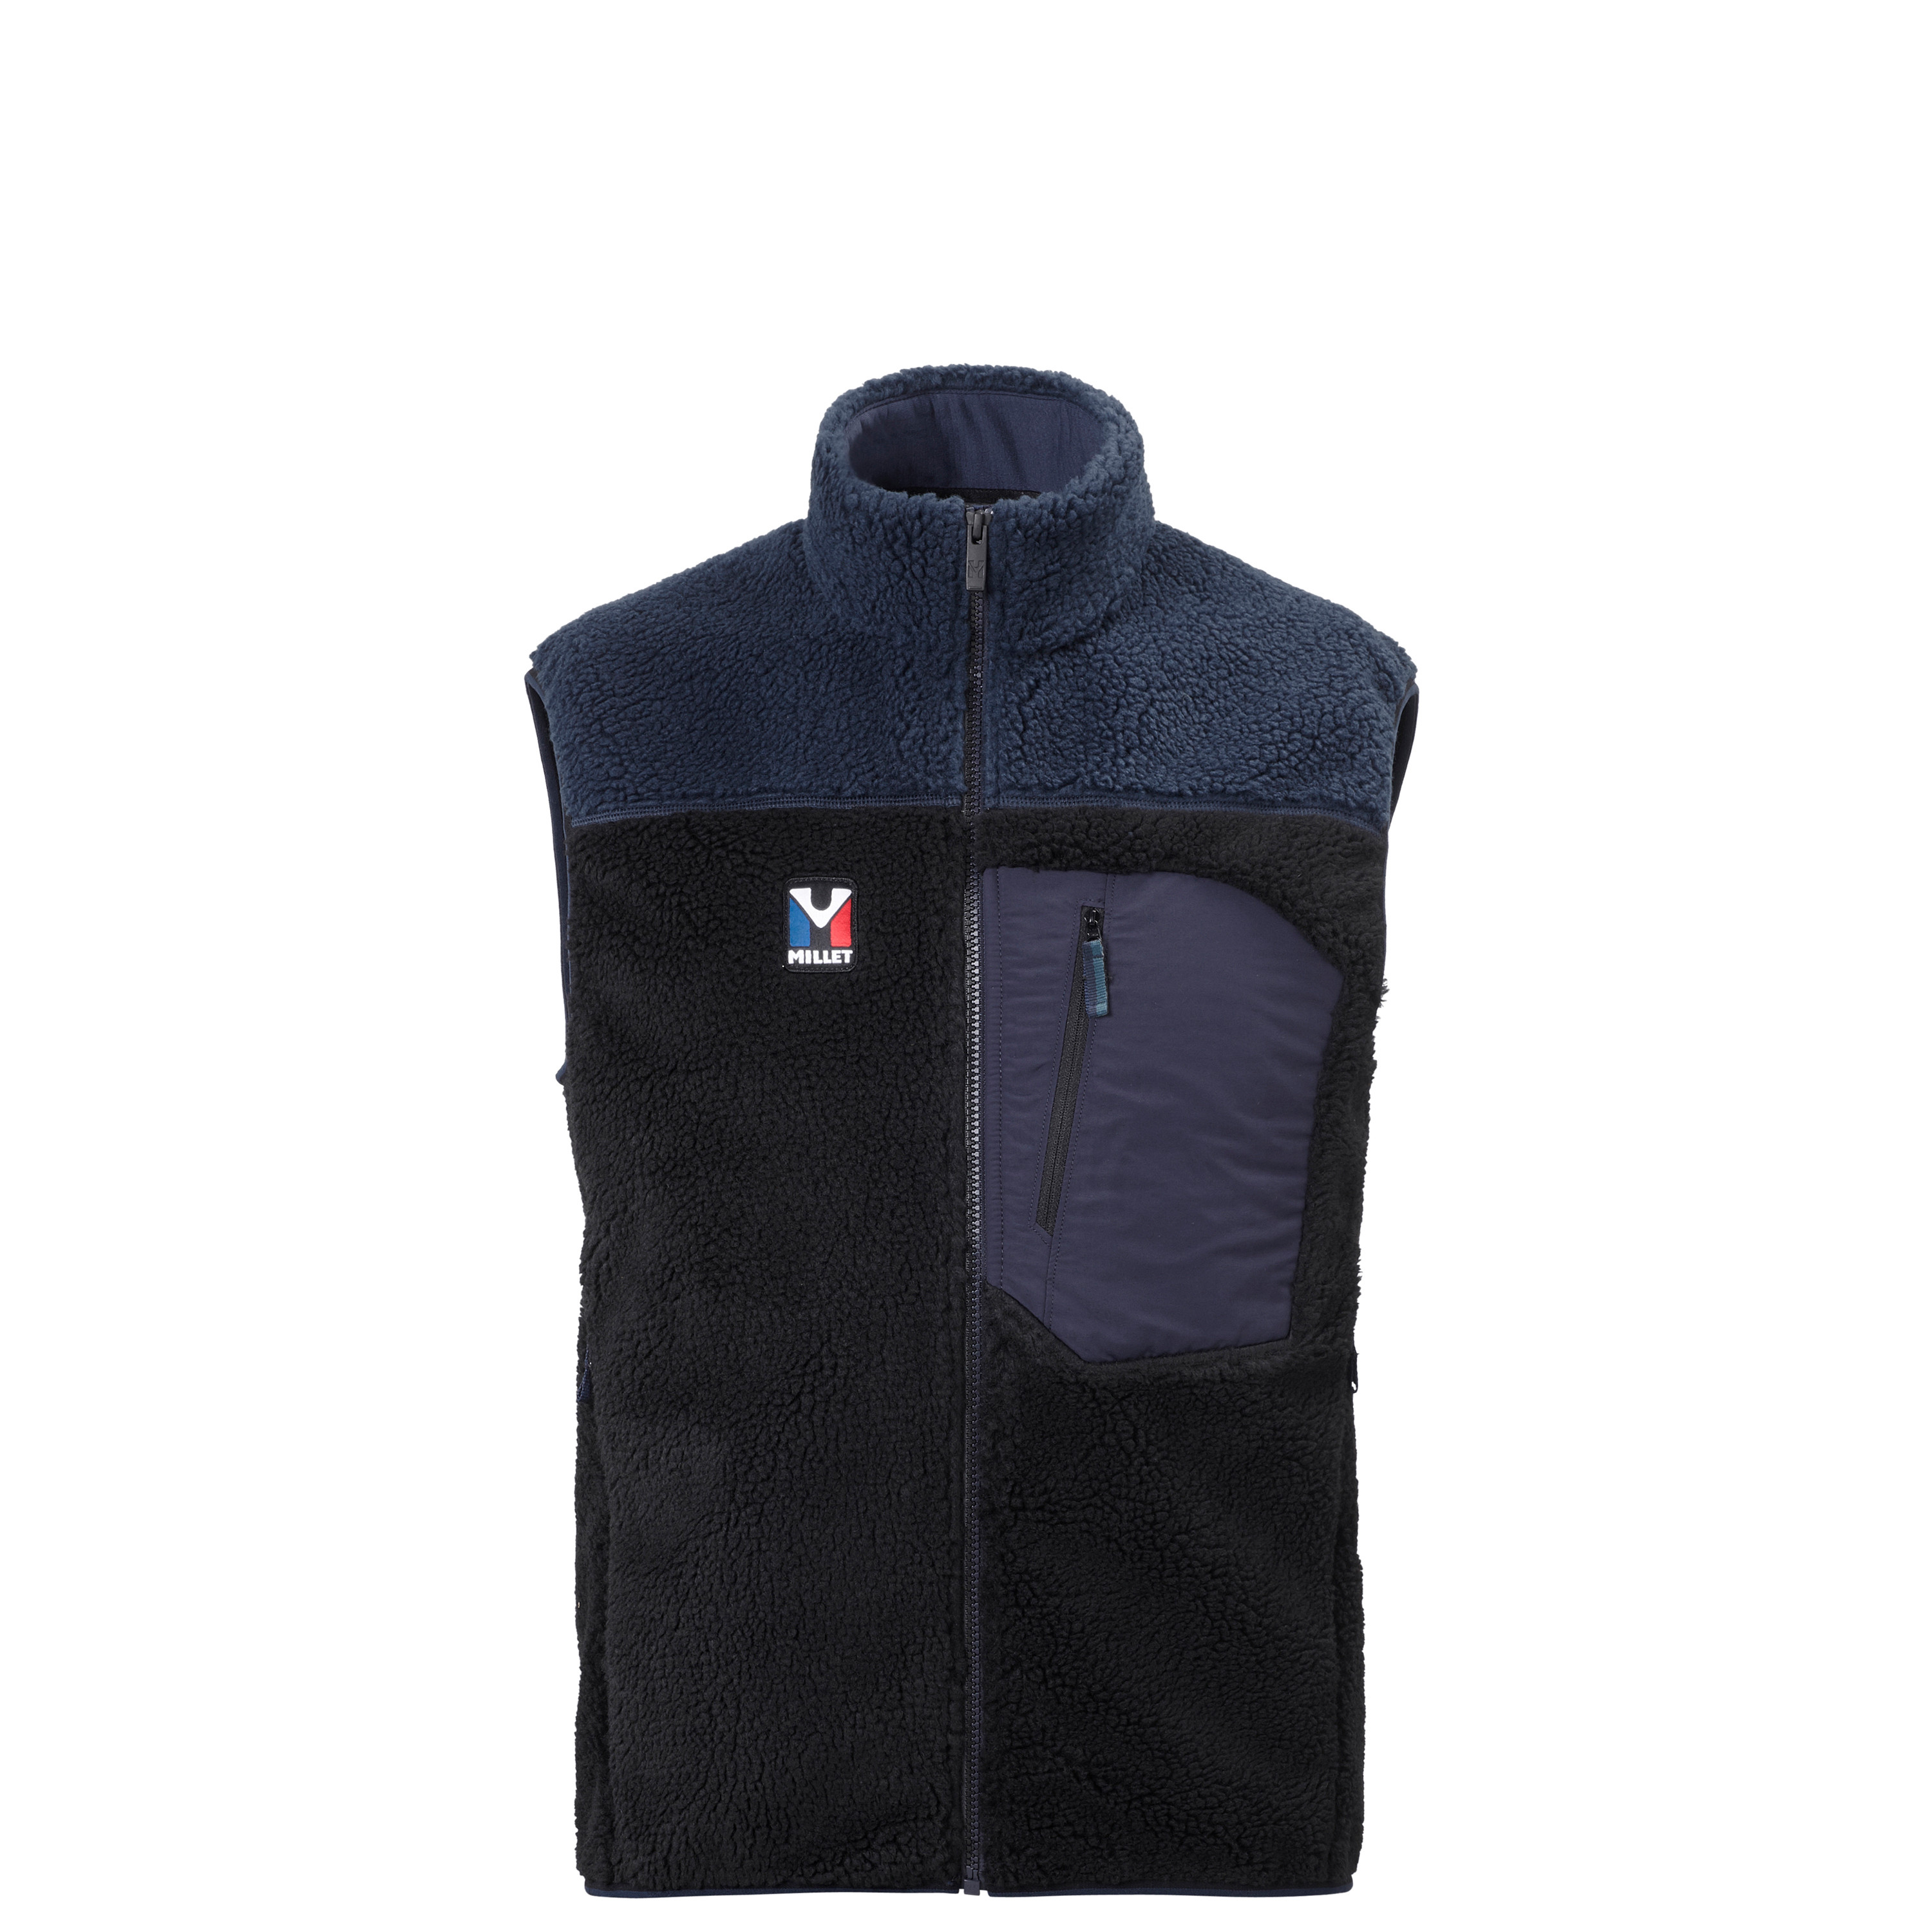 8 SEVEN WINDSHEEP VEST M